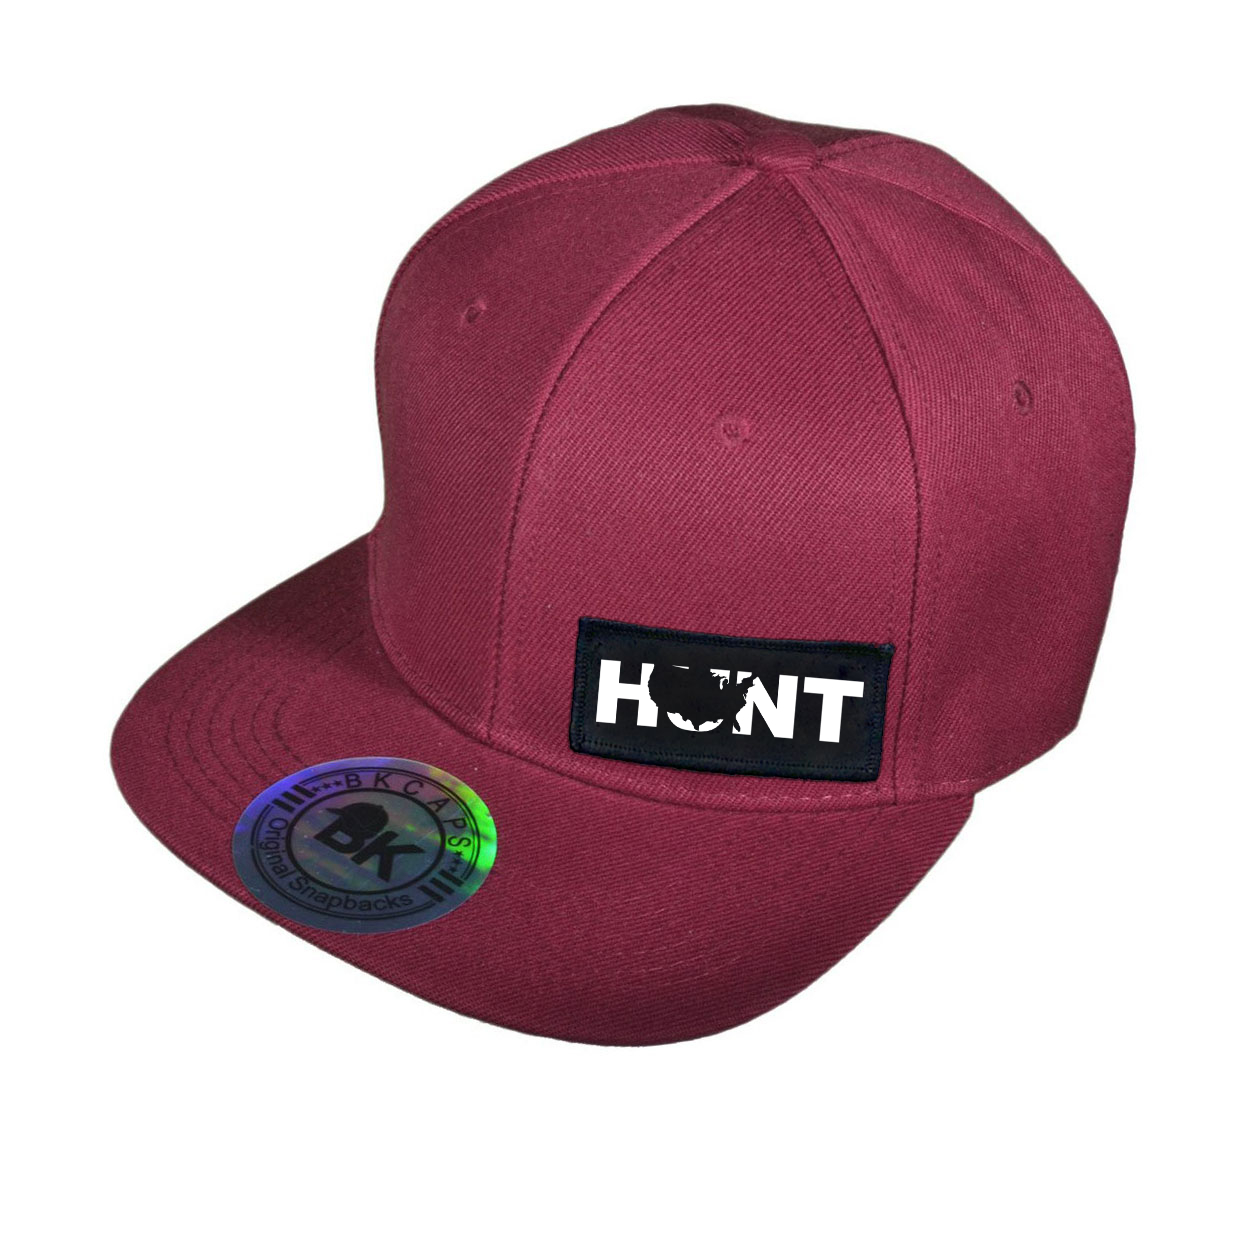 Hunt United States Night Out Woven Patch Snapback Flat Brim Hat Burgundy (White Logo)